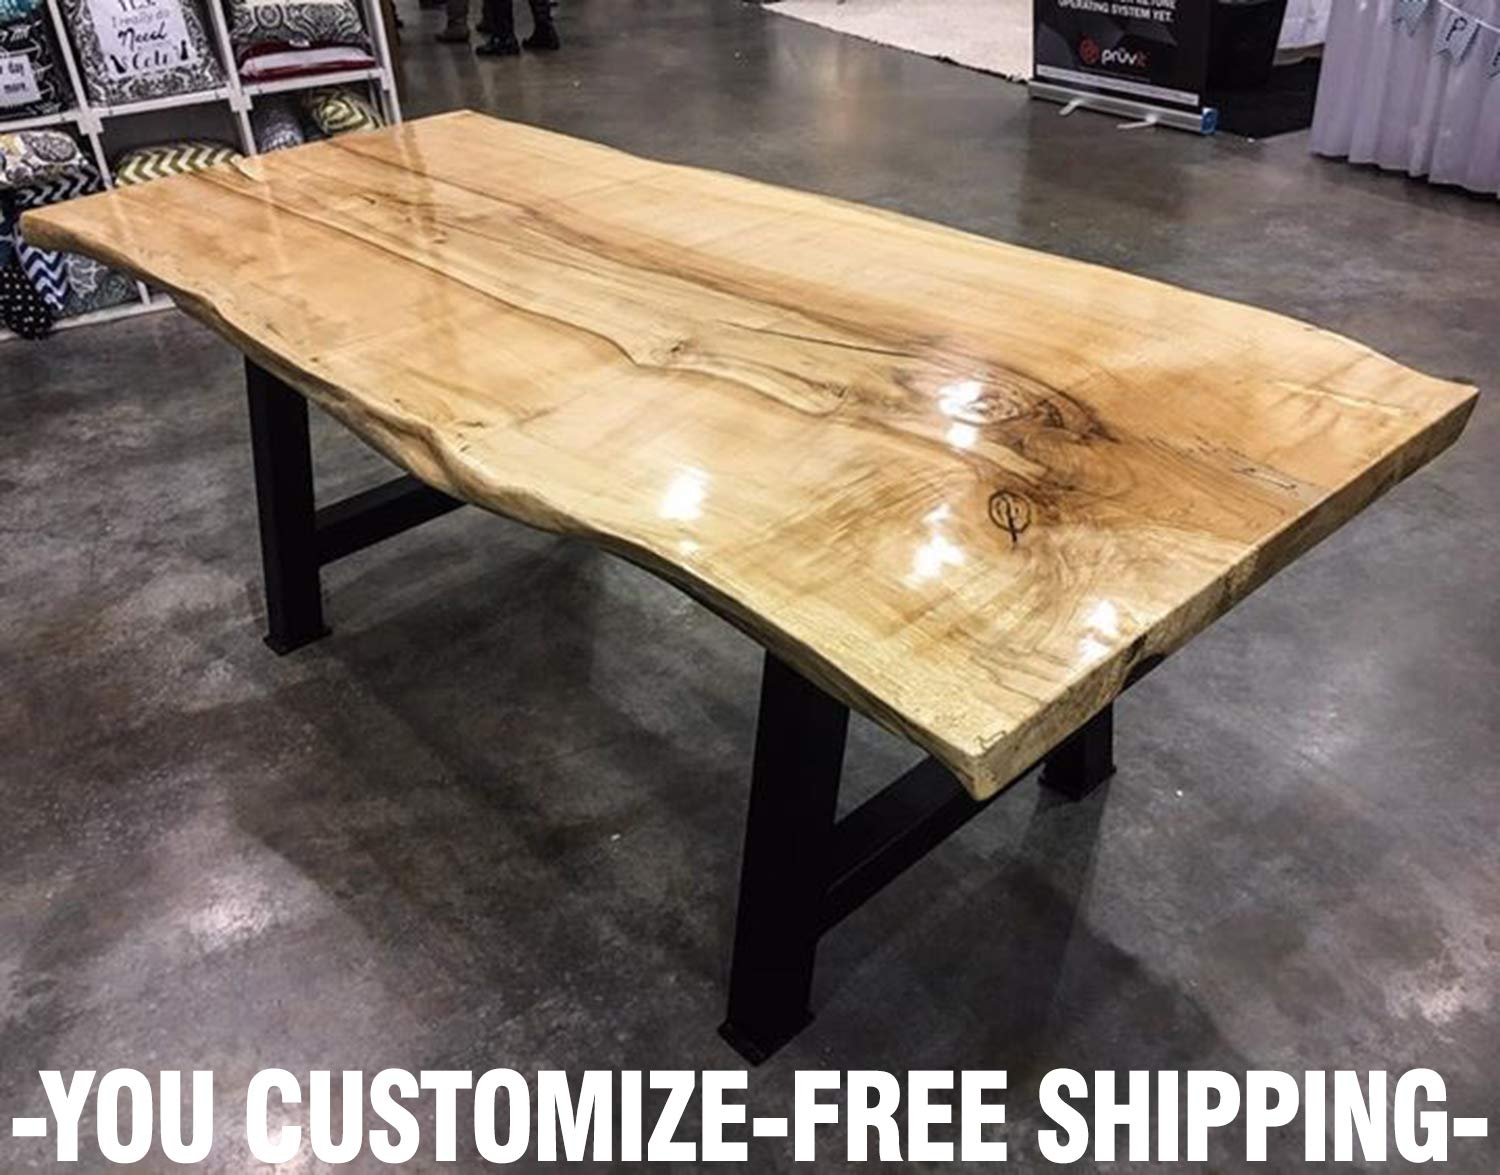 Pleasant Wood Table Wood Table Top Wood Slab Coffee Table Wood Slab Serving Board Wood Slab Table Wood Slab End Table Live Edge Wood Slab Live Wood Home Interior And Landscaping Ologienasavecom